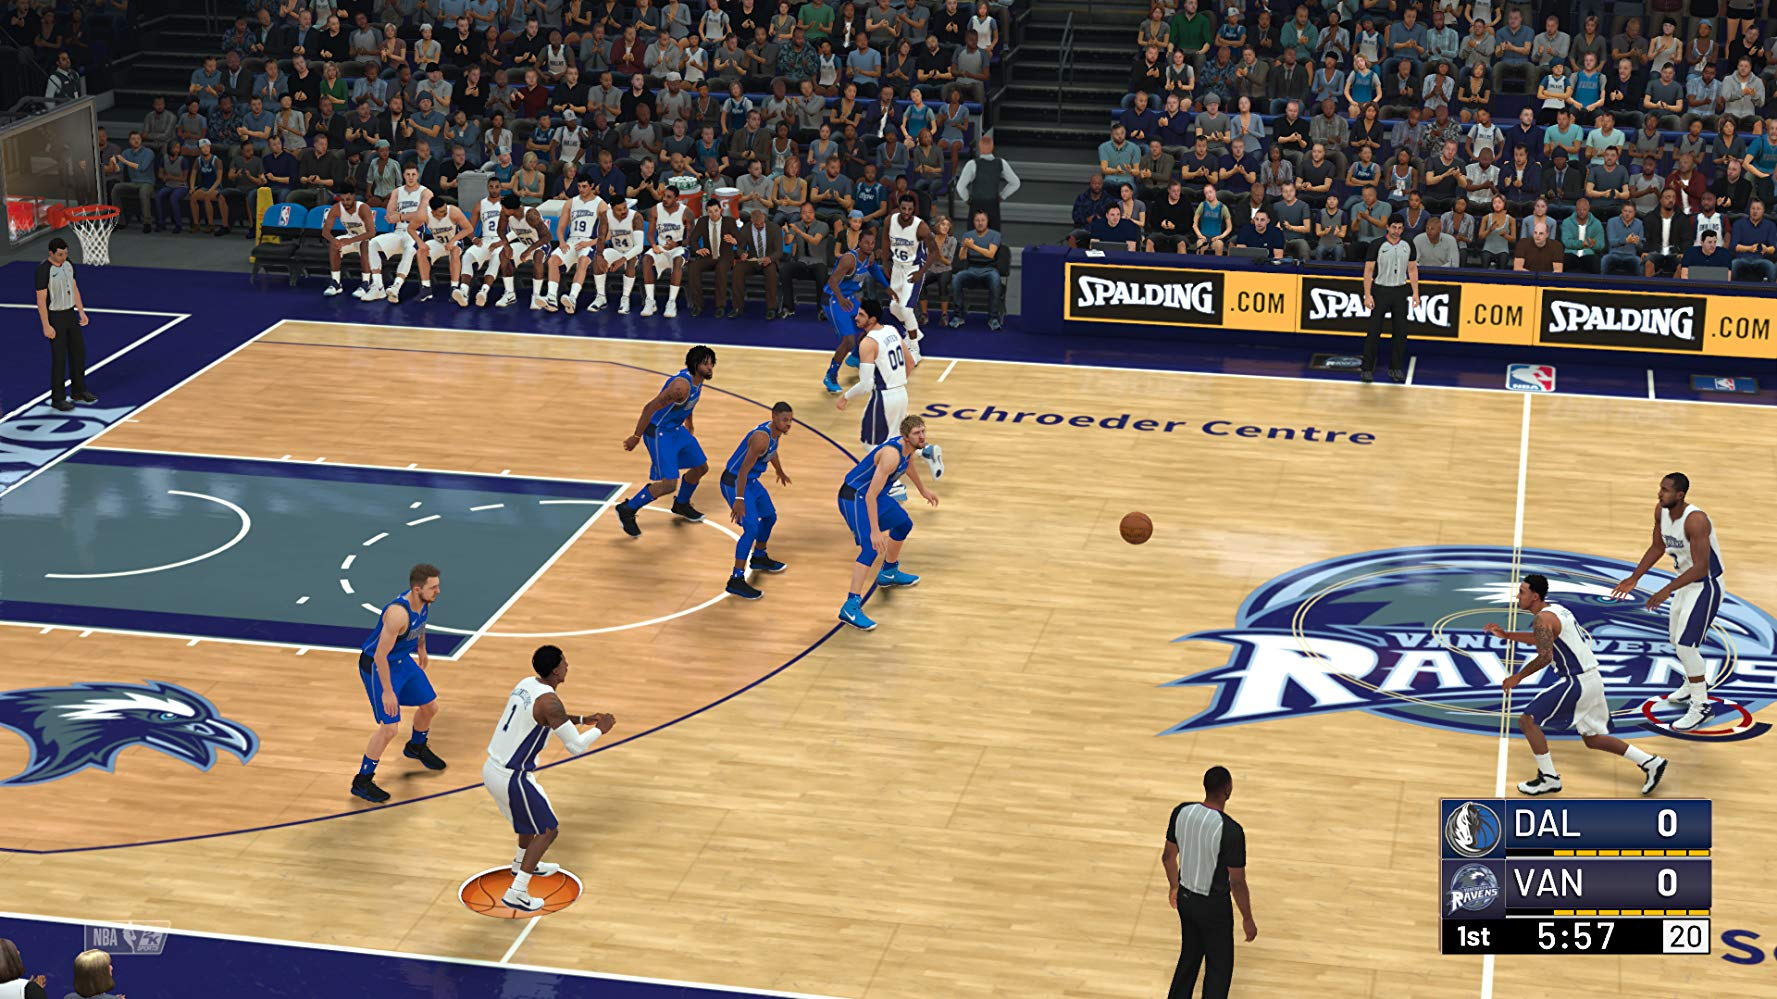 NBA 2K19 APK and MOD Version for Android